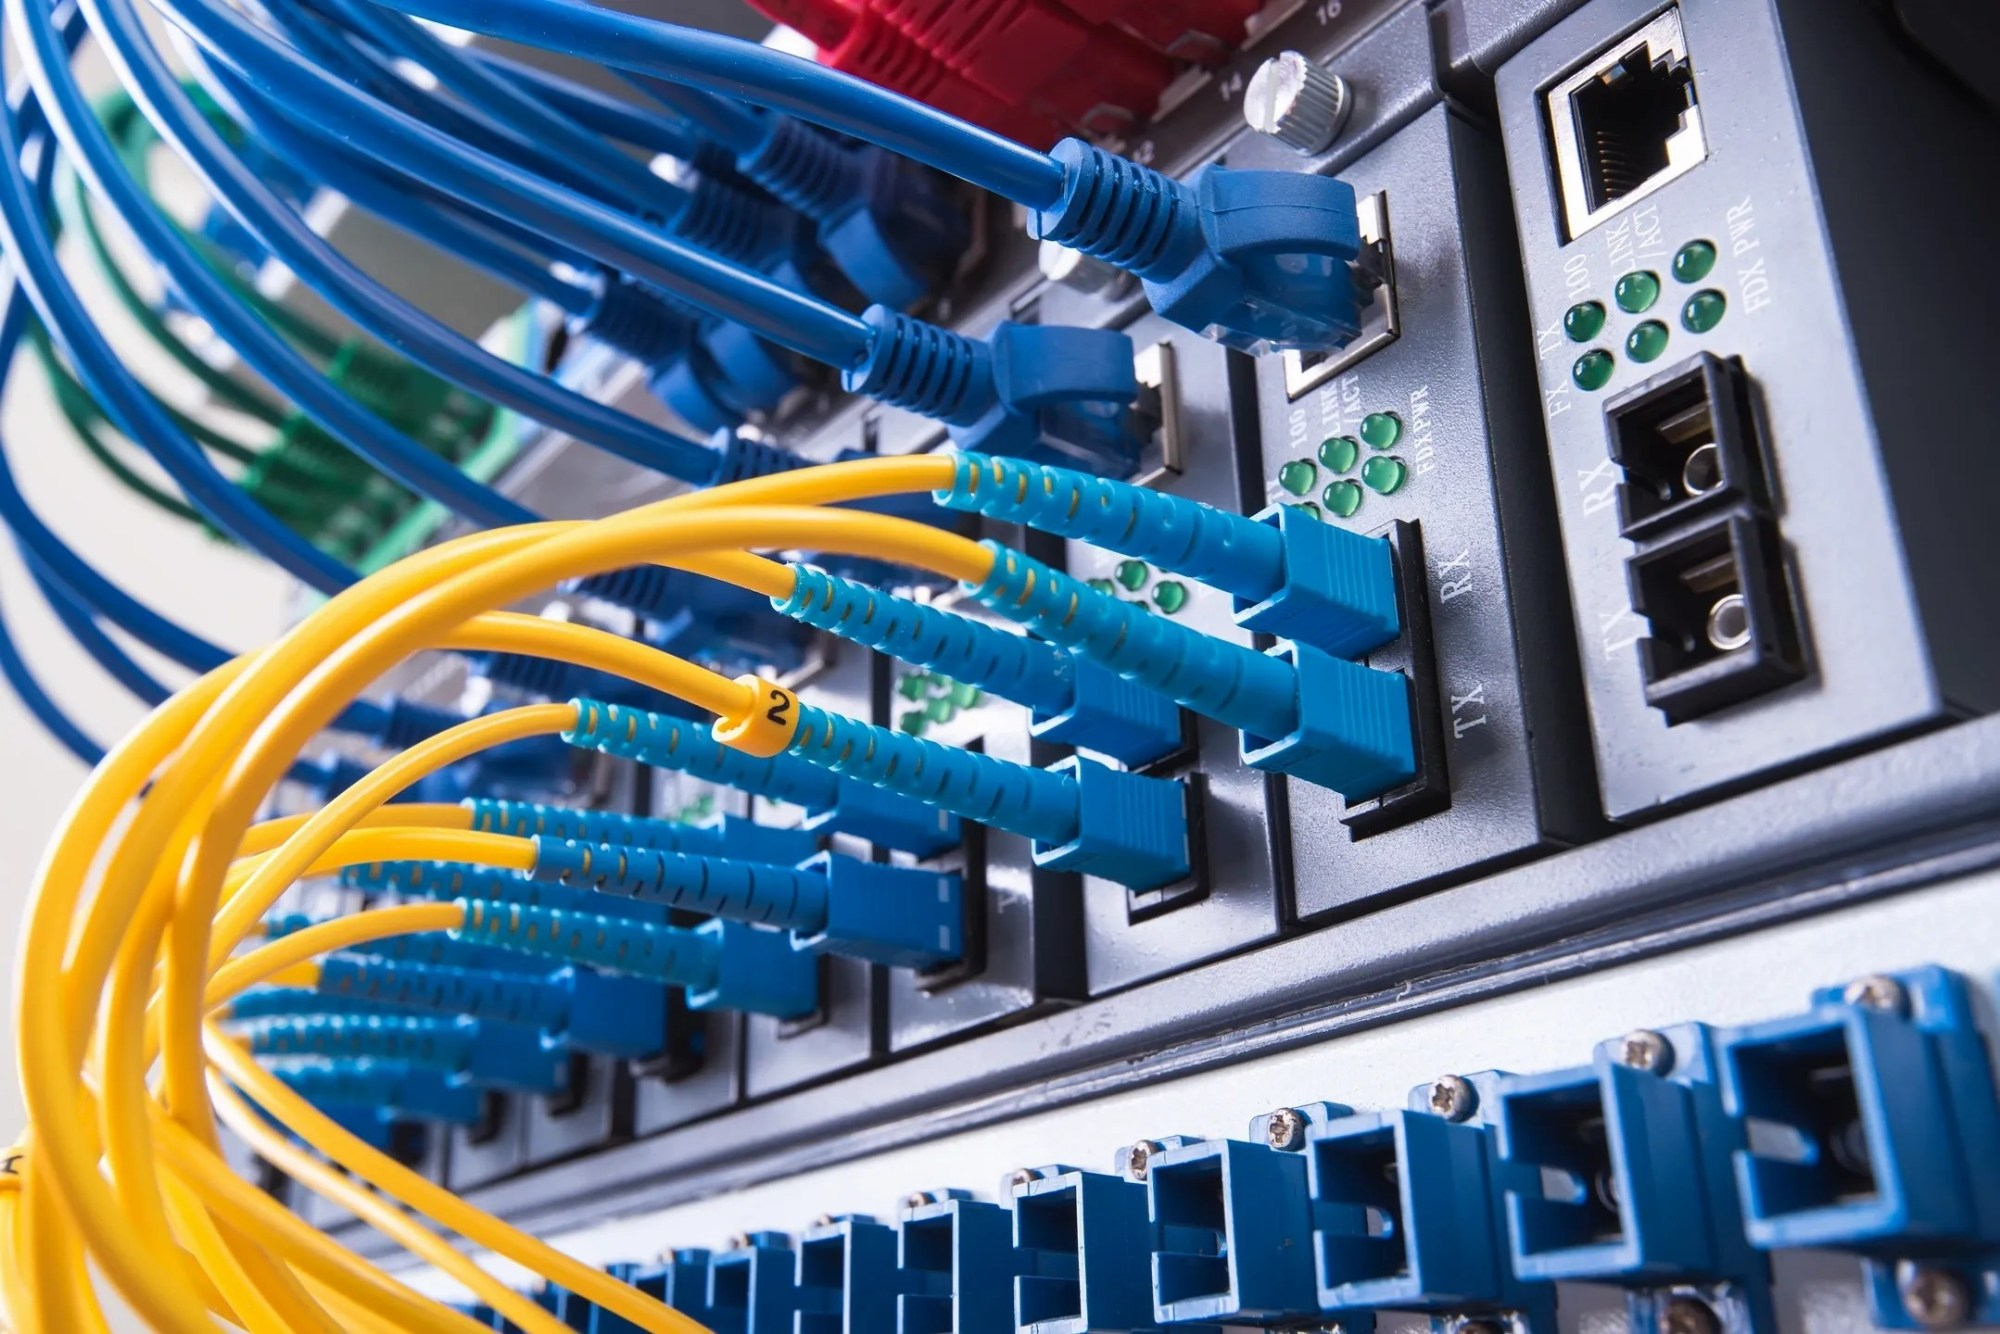 hight resolution of network cabling installation network cabling installation xp telecom avaya nec voip network cabling